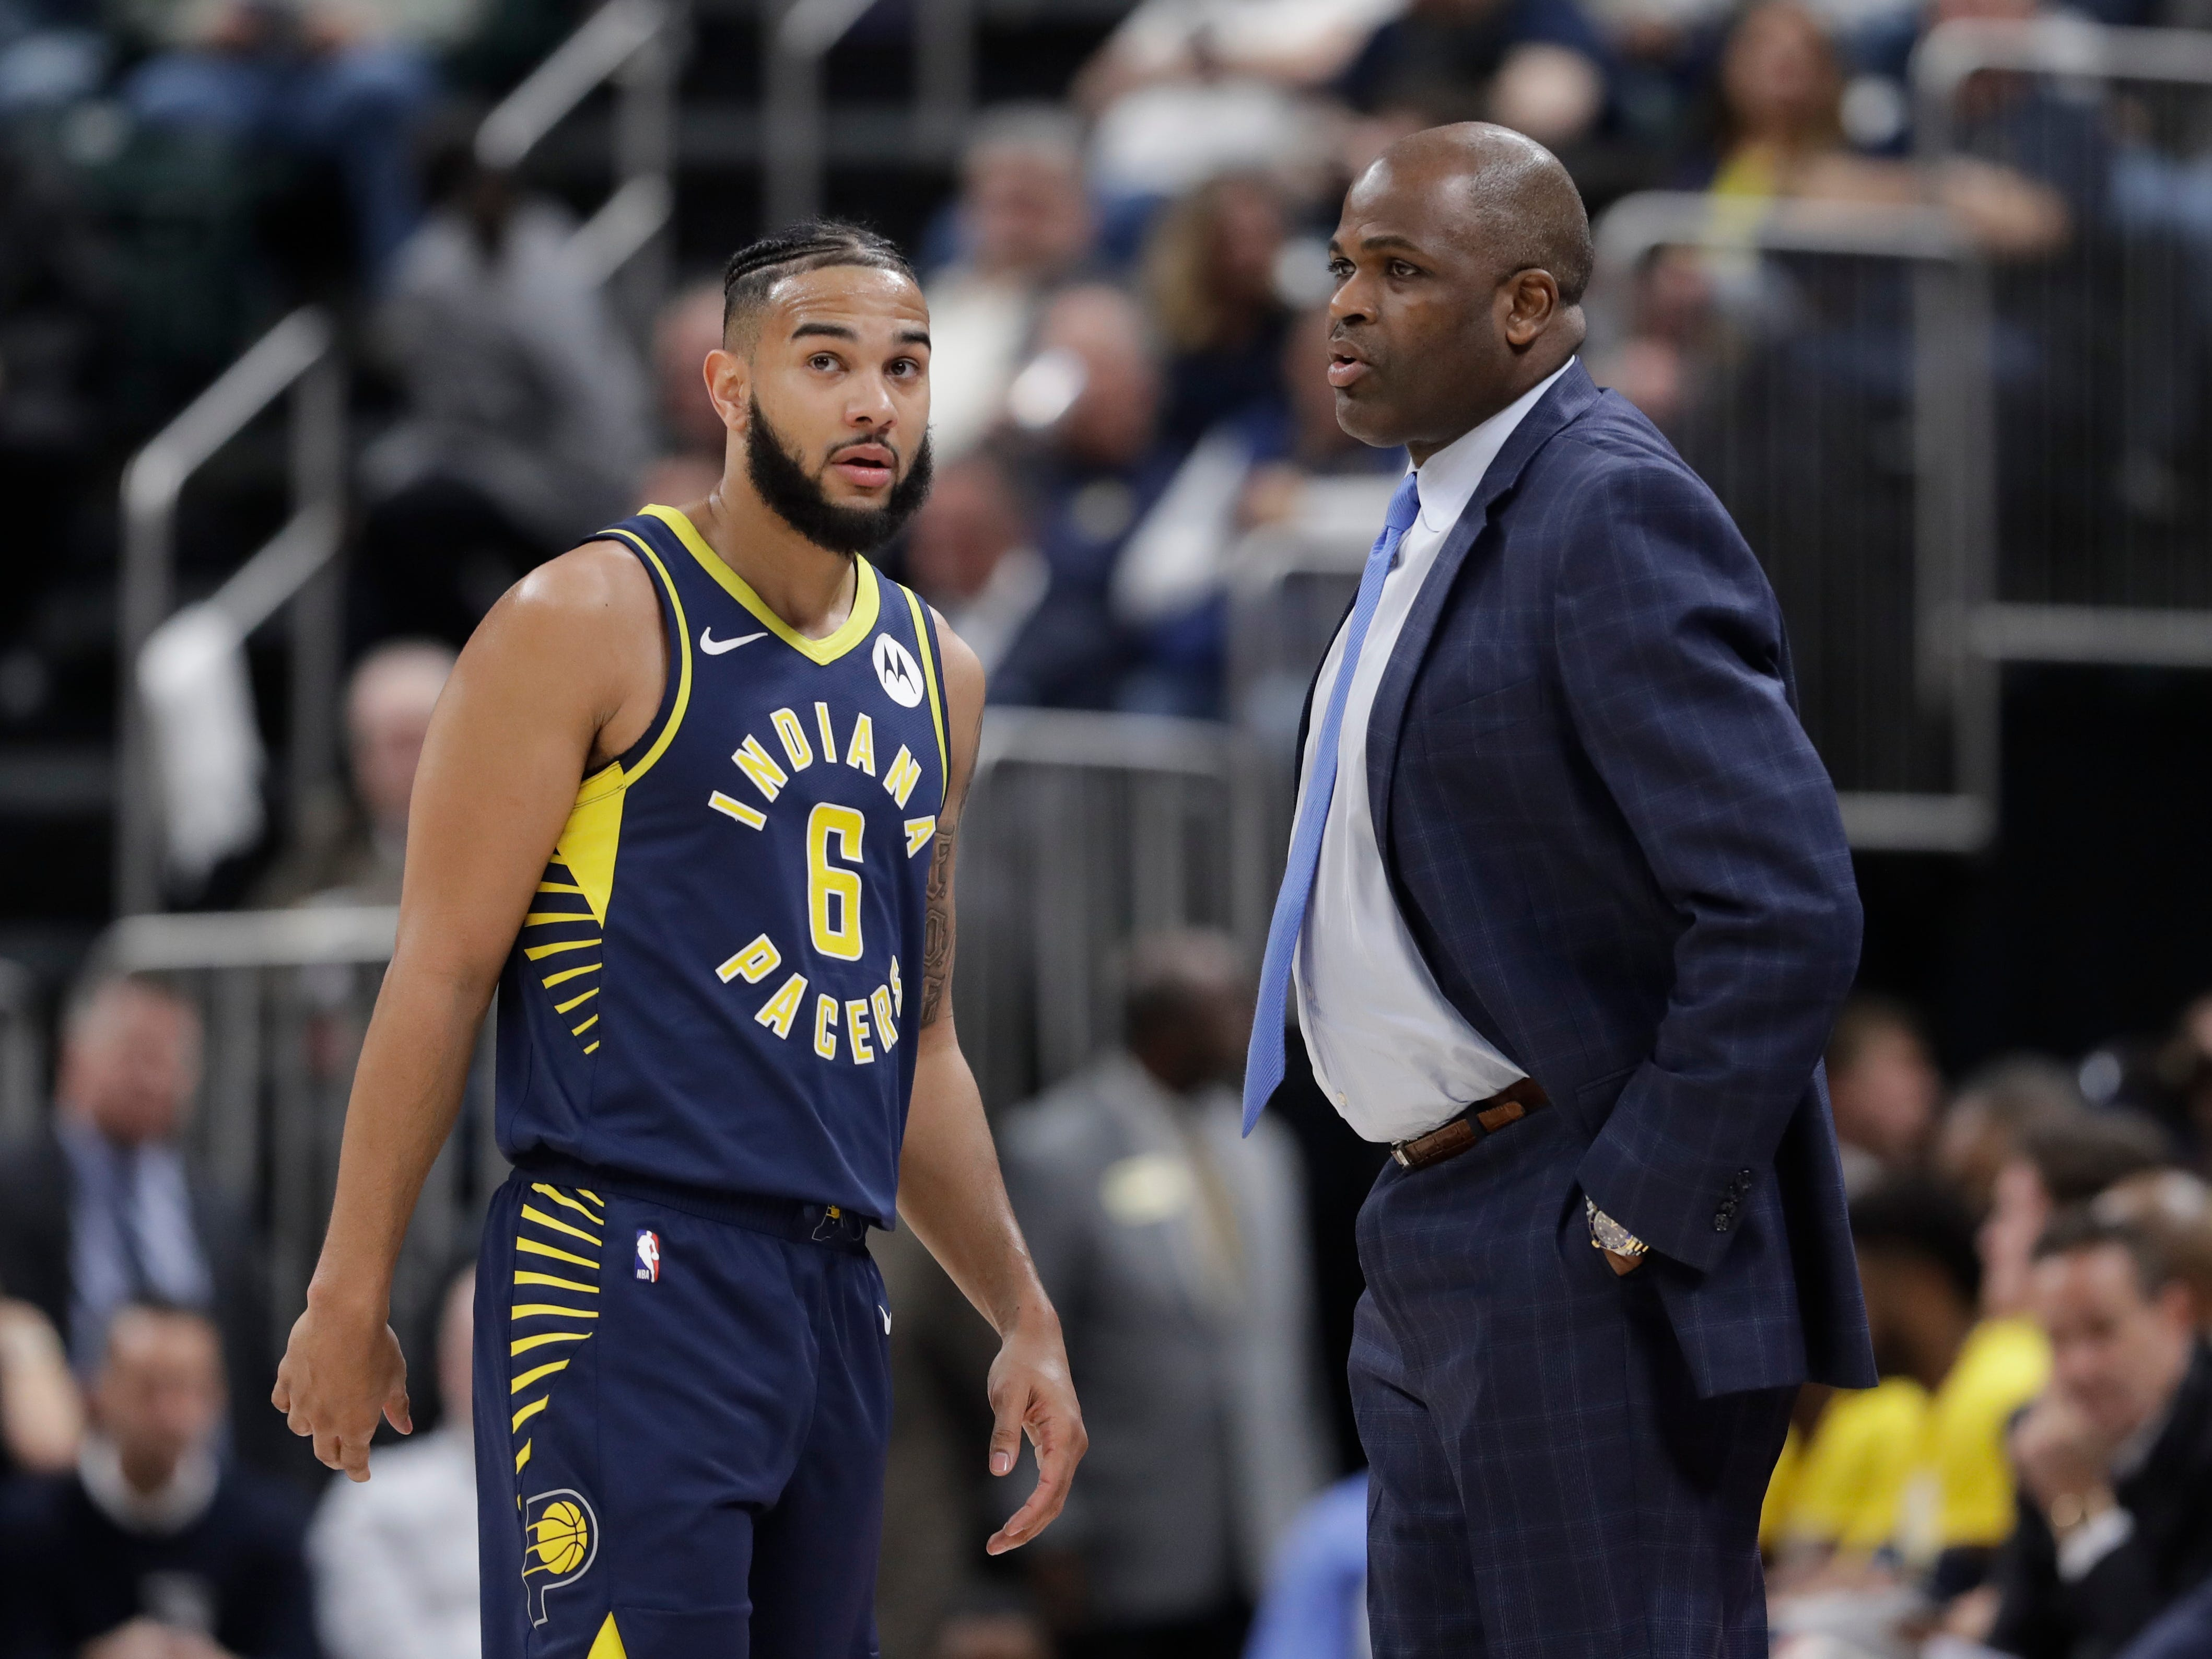 Indiana Pacers head coach Nate McMillan, right, talks with Cory Joseph during the first half of an NBA basketball game against the Charlotte Hornets, Monday, Feb. 11, 2019, in Indianapolis.